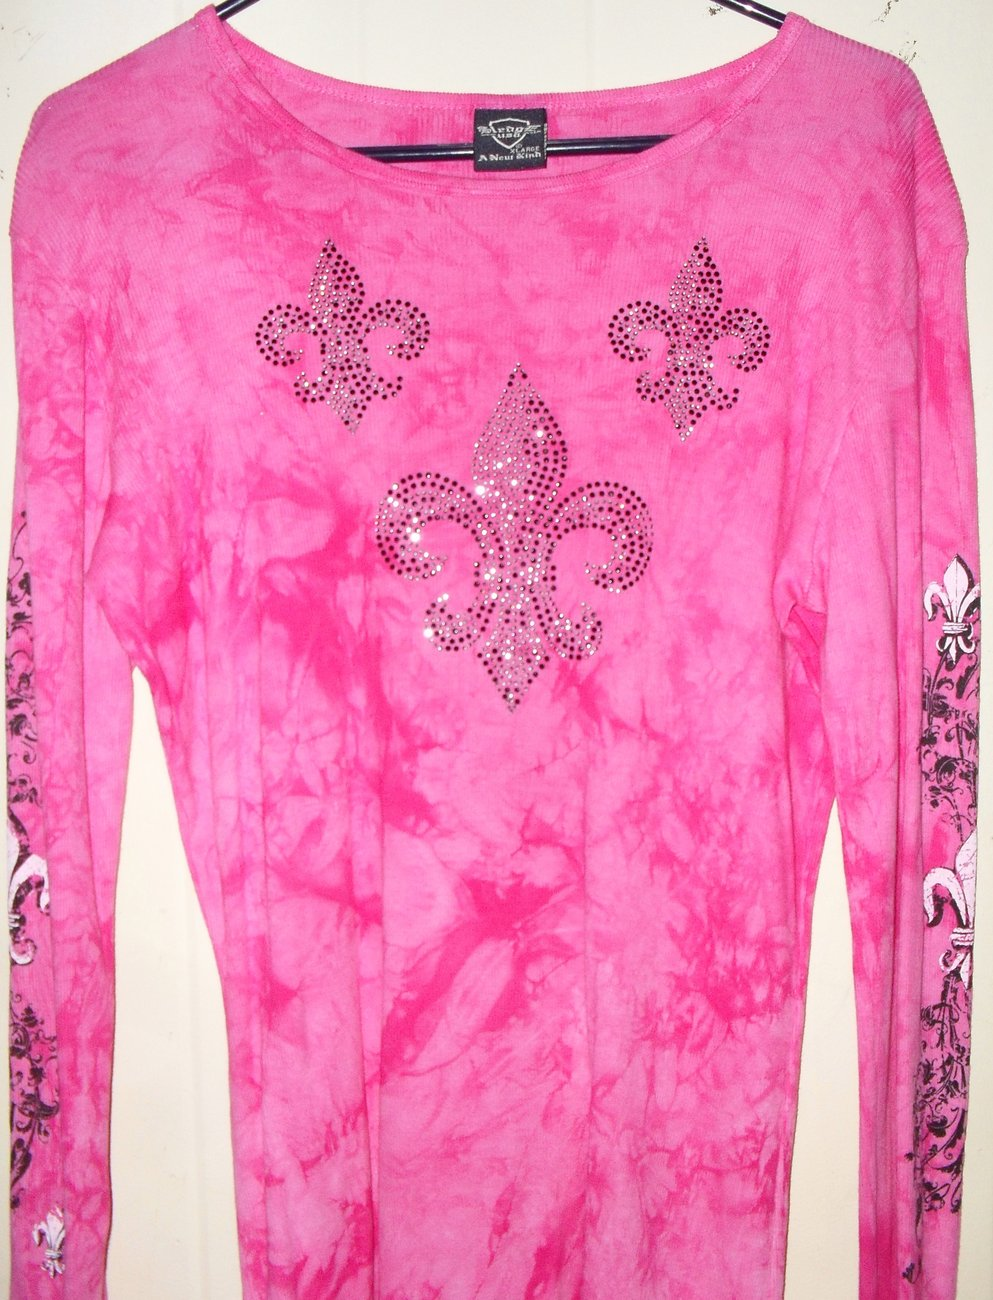 Sledge Made In USA Sportswear Shirt Hot Pink